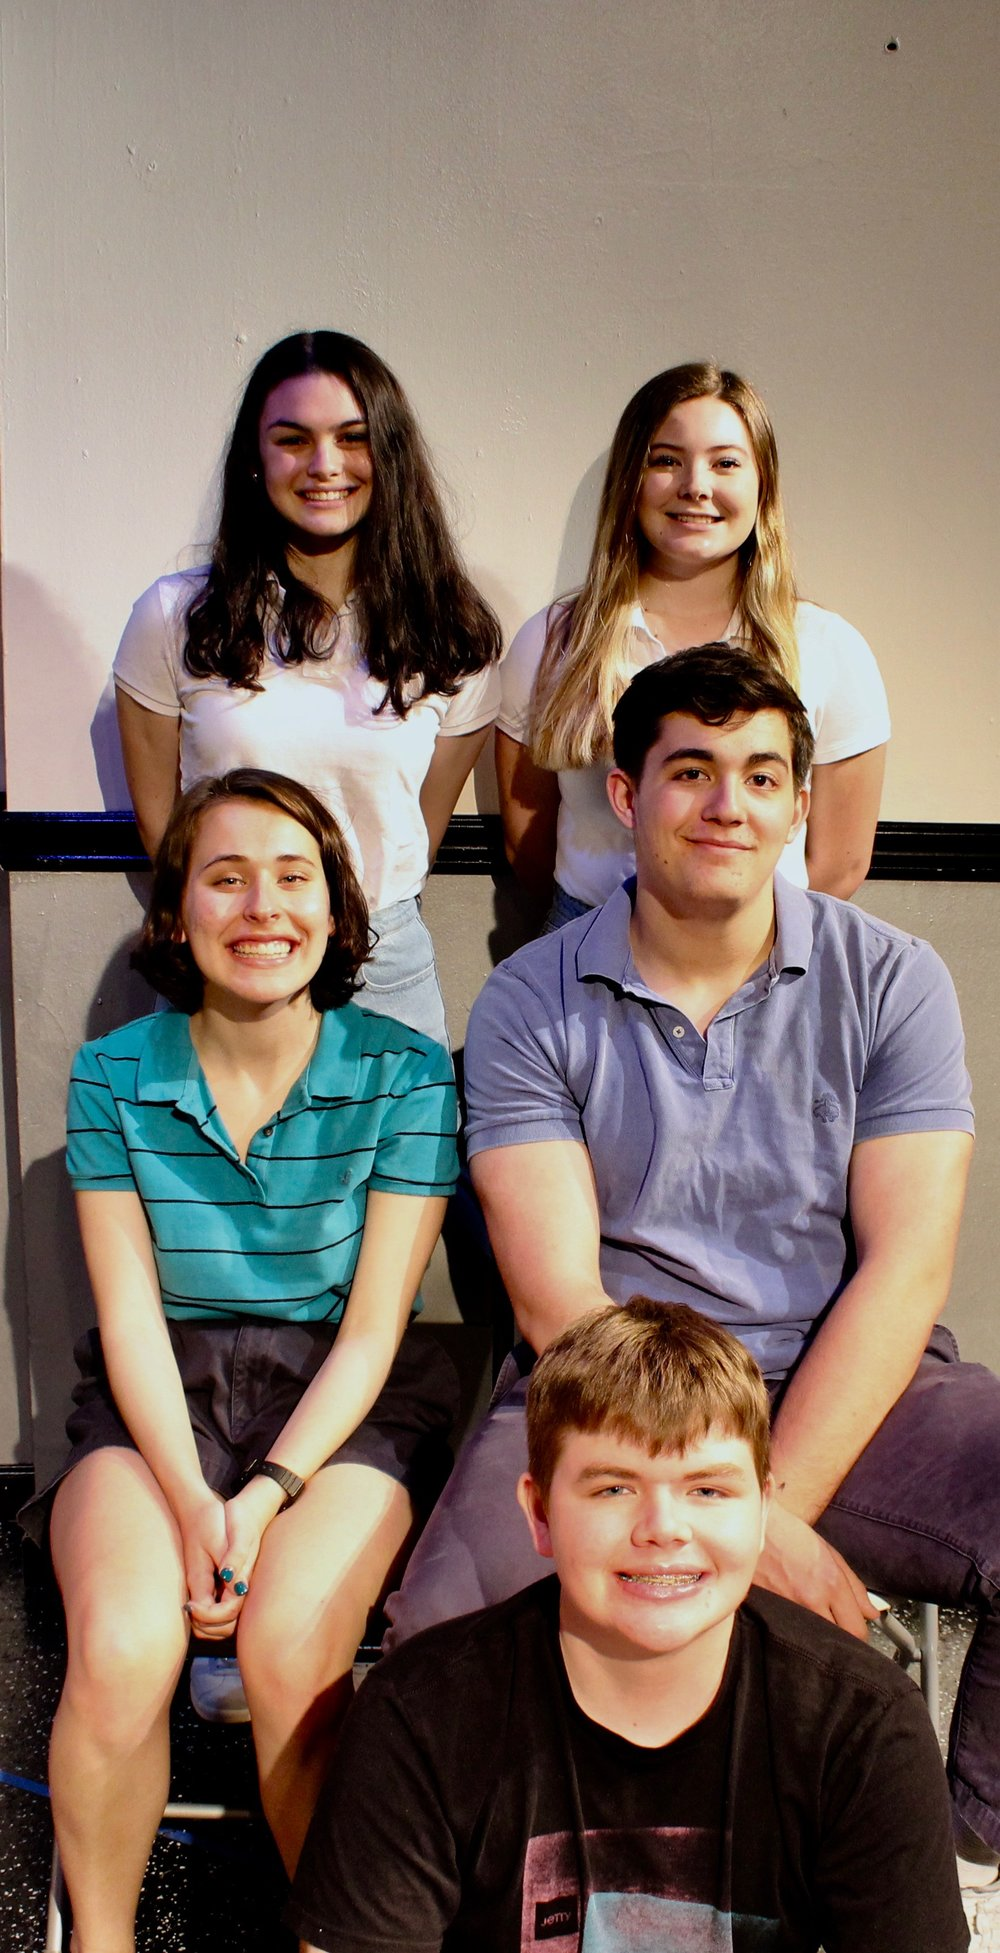 Clockwise from top left: Casey Rae Borella as Kiki, Caitlin Ladda as Sarah, Liam Gerard as Martin, Patrick Napolitano as Kurtz, Katie Kunka as Loony